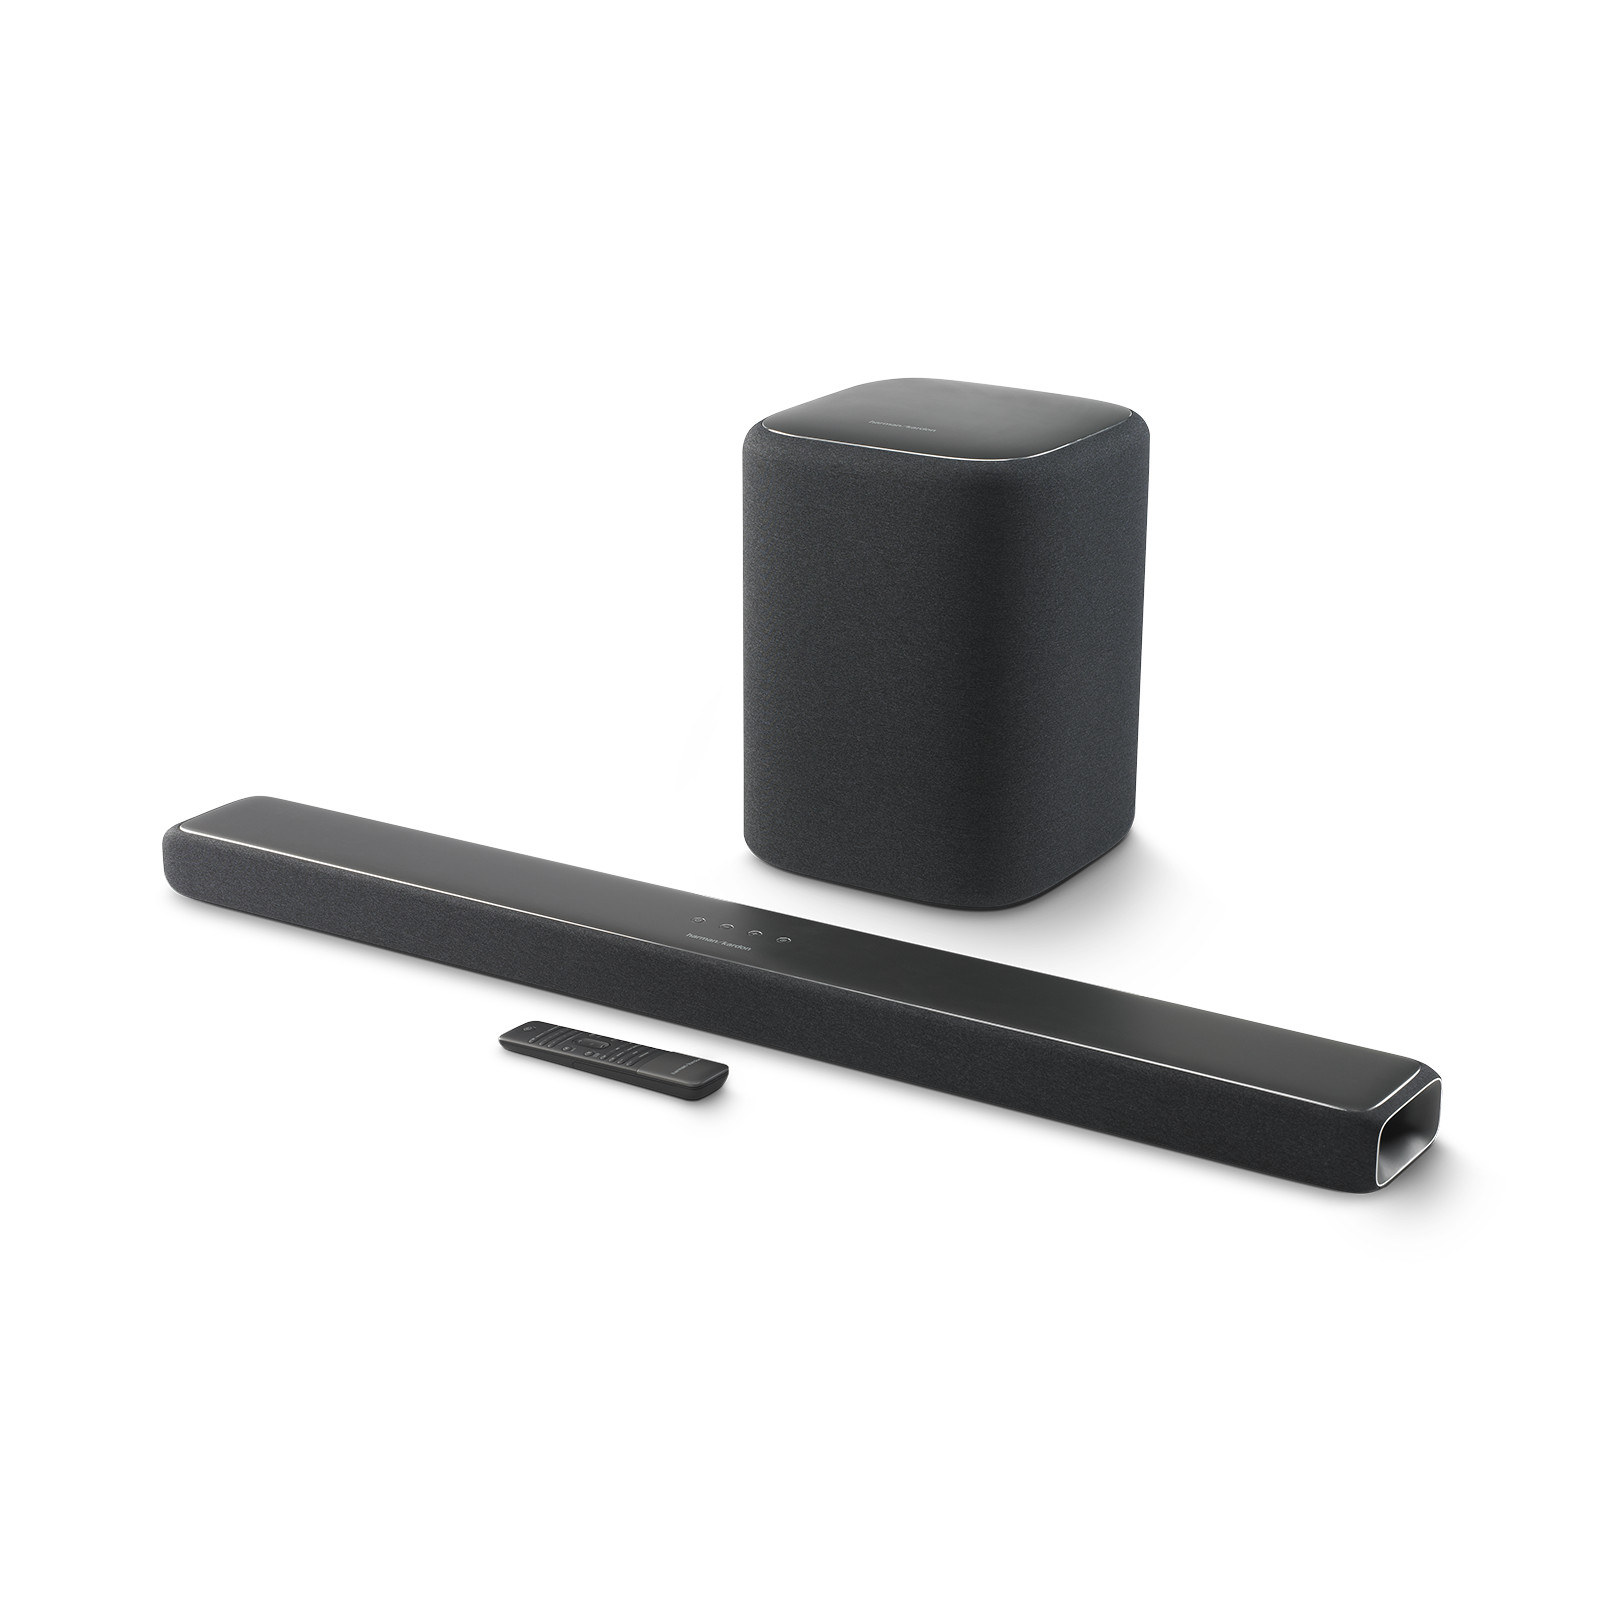 Enchant 1300 - Graphite - All in One 13-Channel Soundbar with MultiBeam™ Surround Sound - Detailshot 3